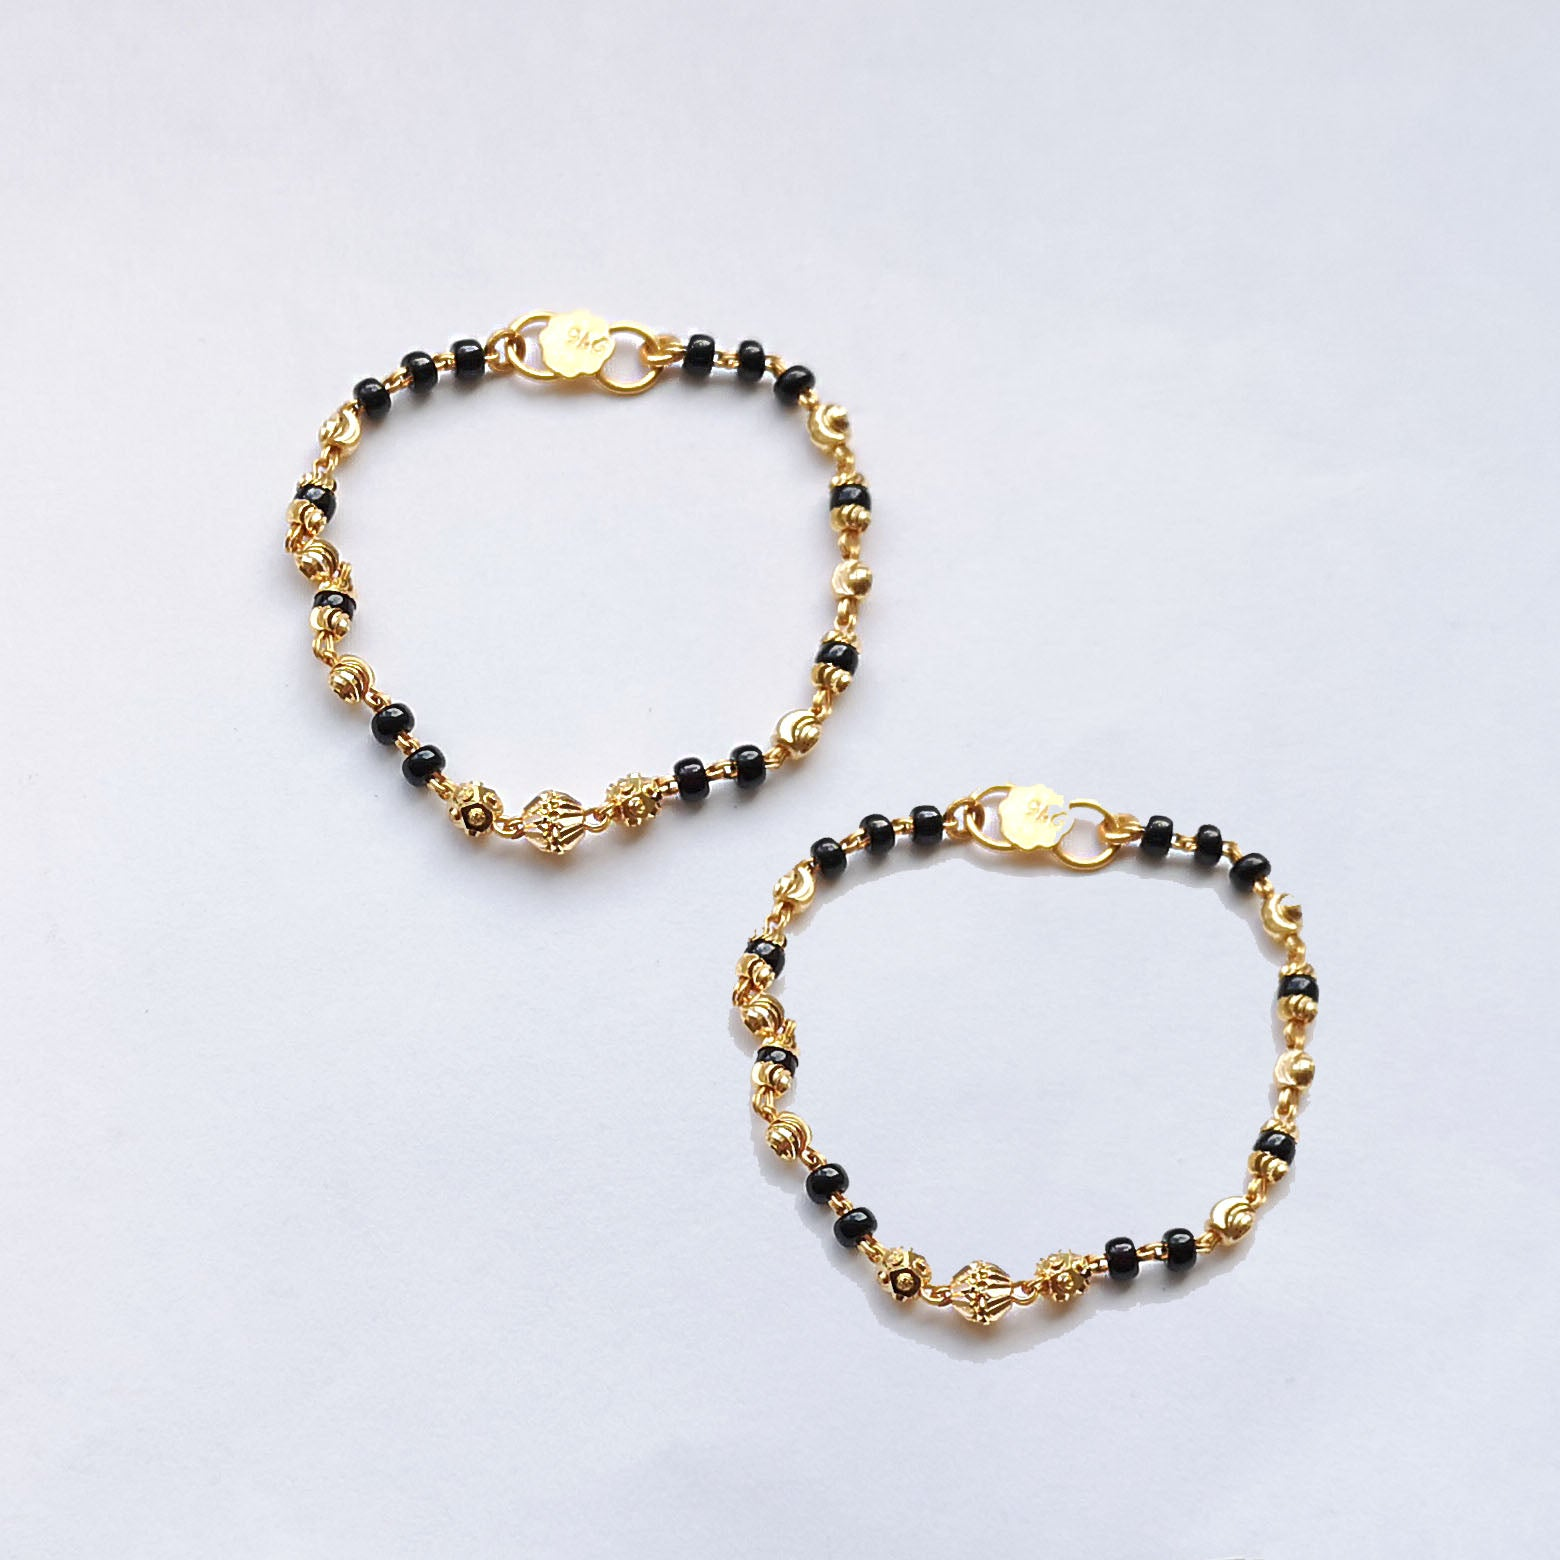 22ct Gold Children's Bracelets with Black Beads and Diamond Cut Design CBR-7912